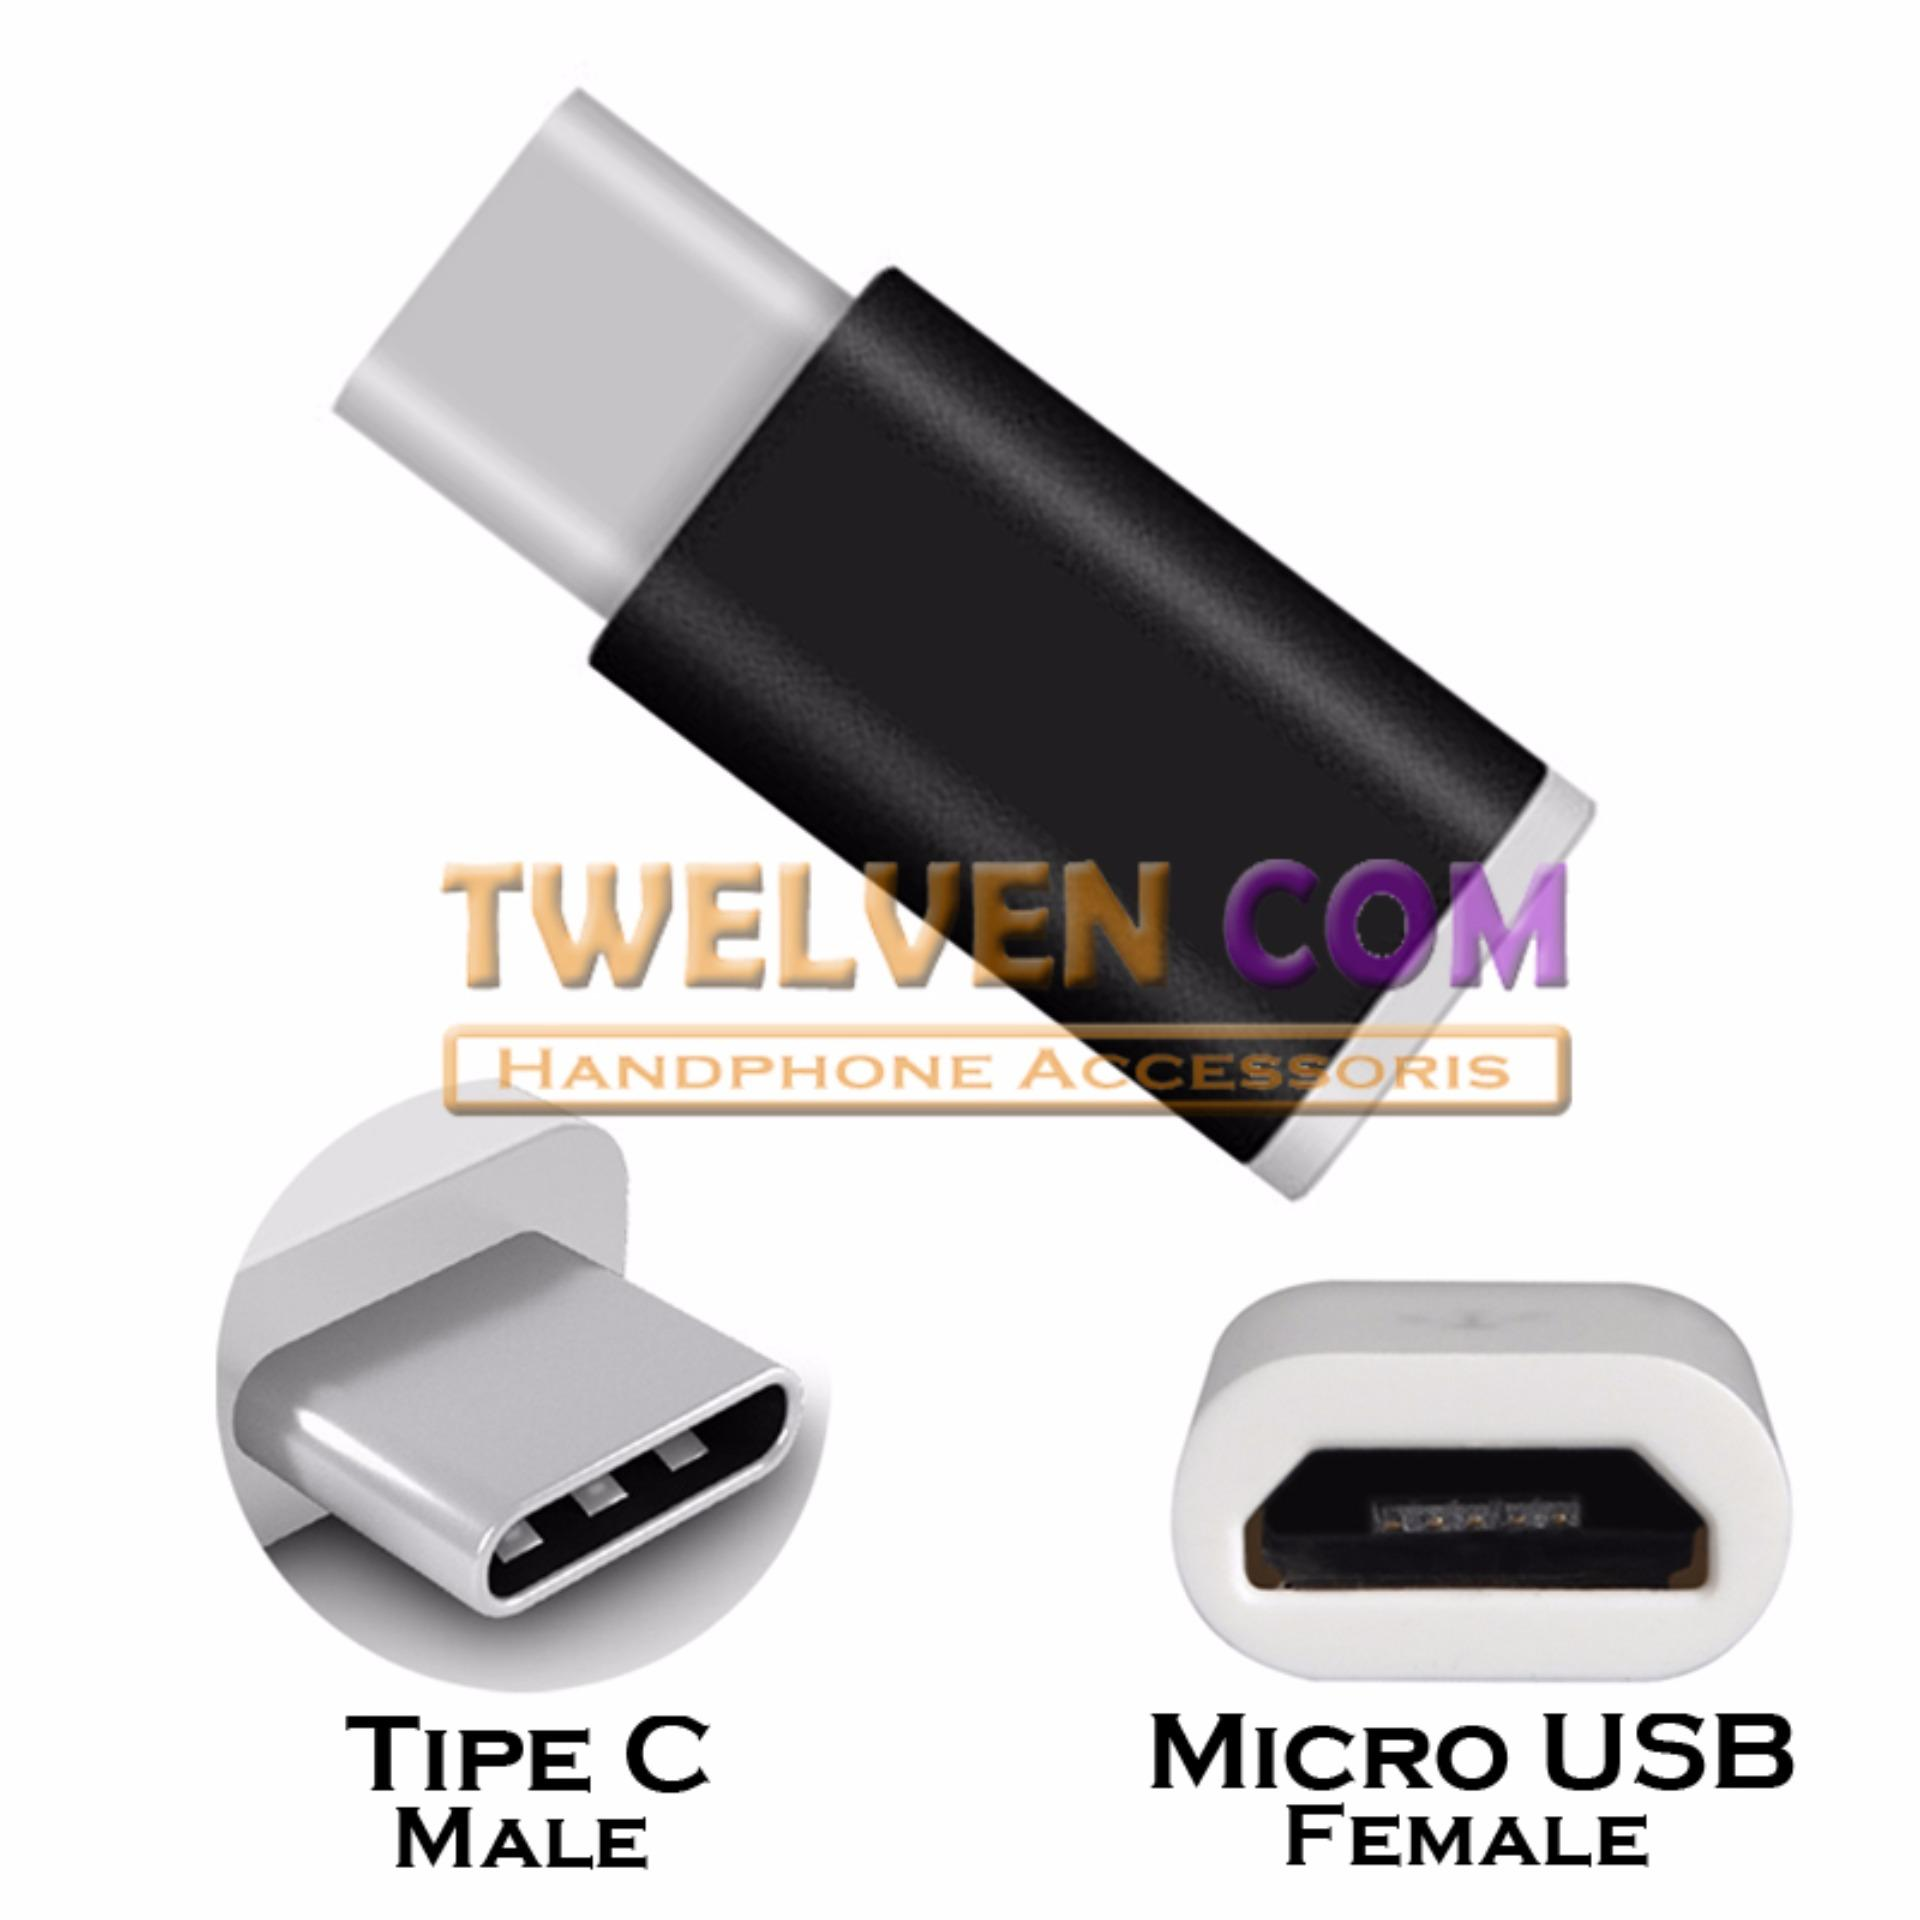 gstation wireless usb dongle bluetooth adapter hitam